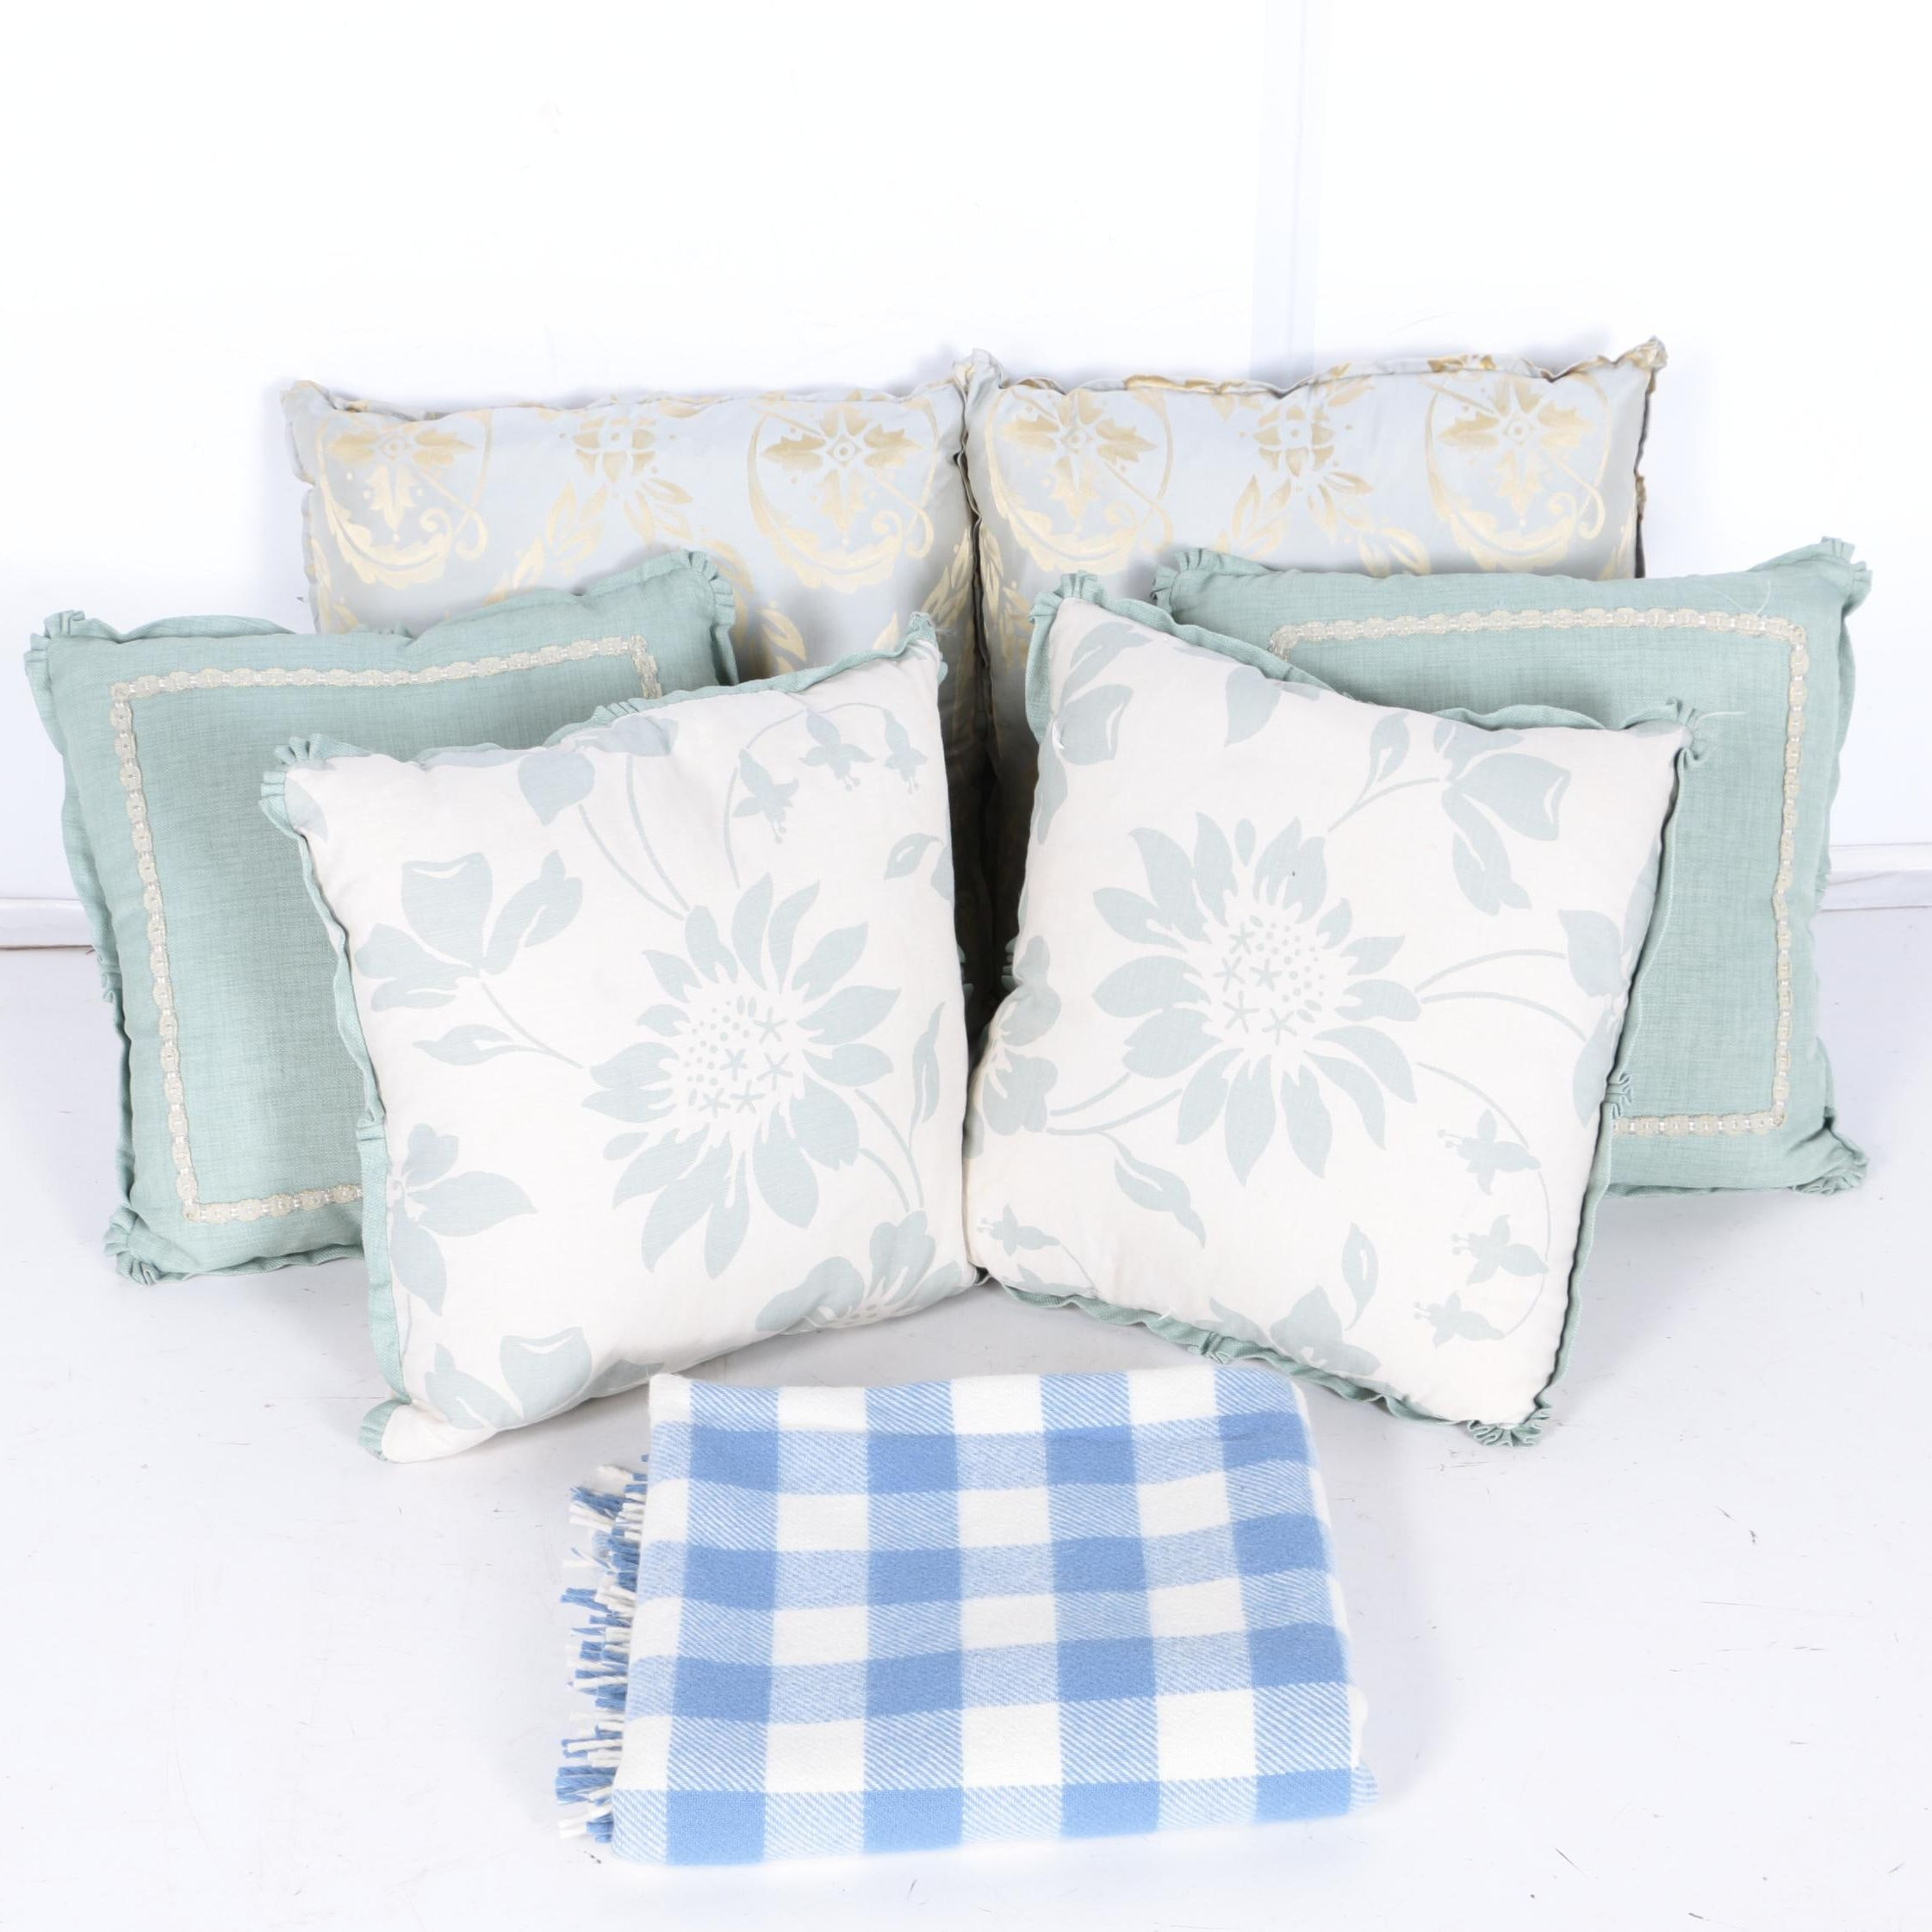 Assortment of Pillows and a Throw